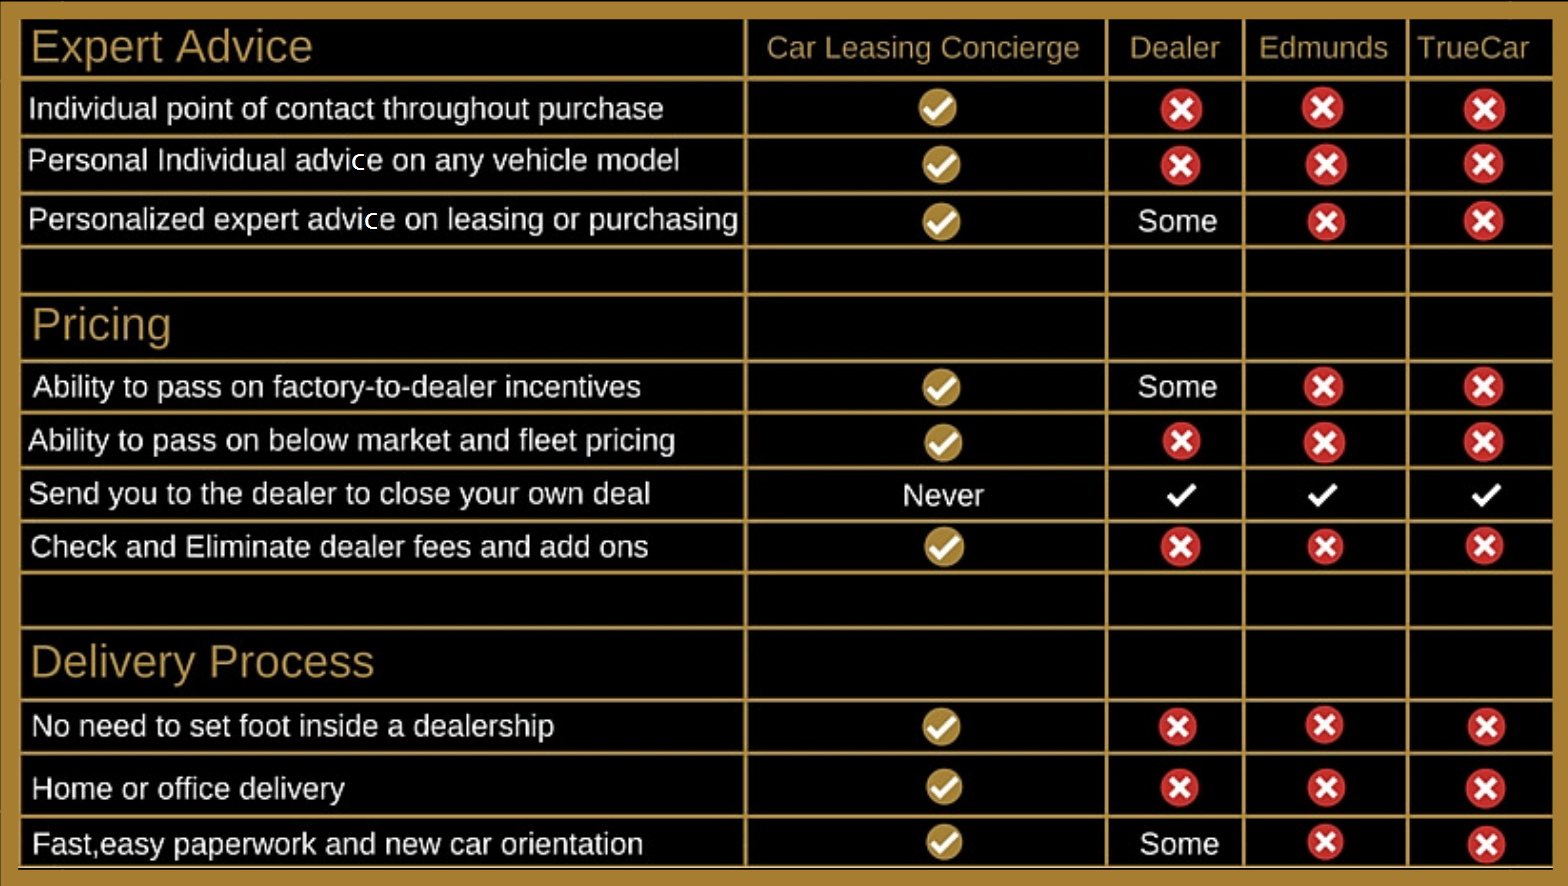 Car Leasing Concierge comparison sheet